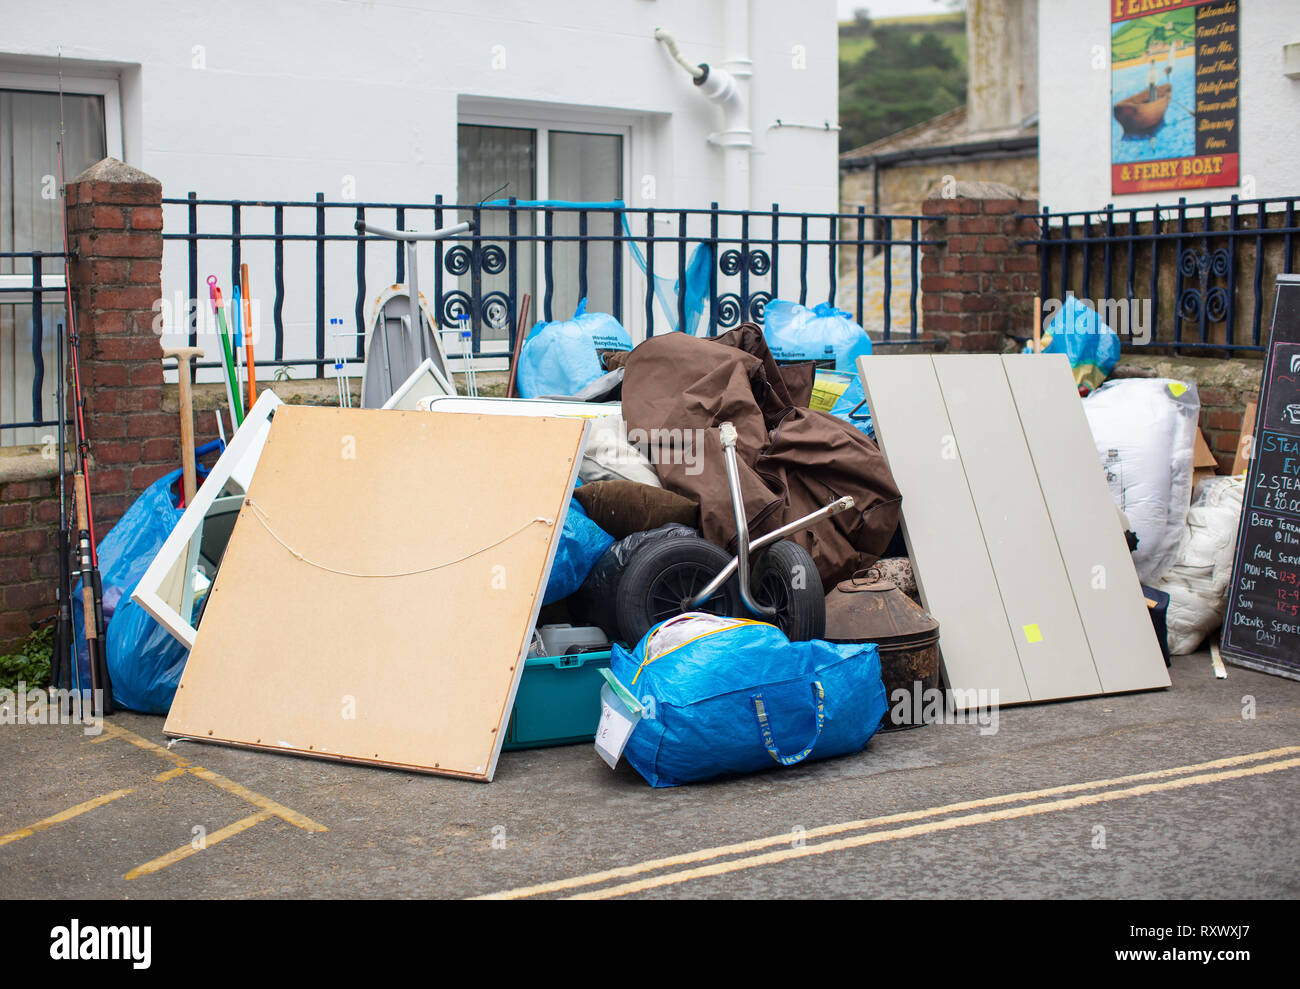 A shot of a pile of possessions left on the street during a house move. - Stock Image